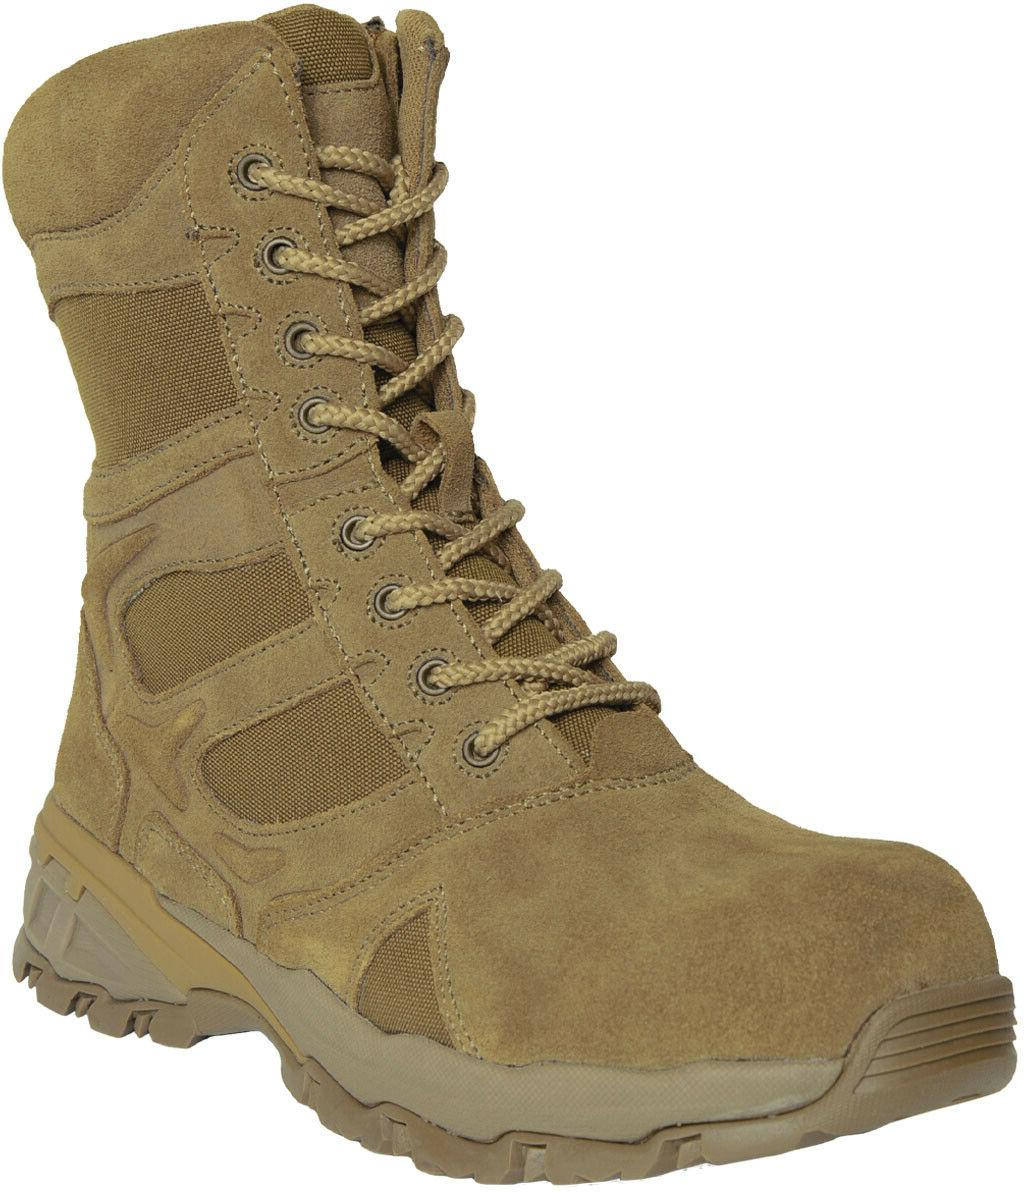 Coyote Combat Tactical Zipper Boots